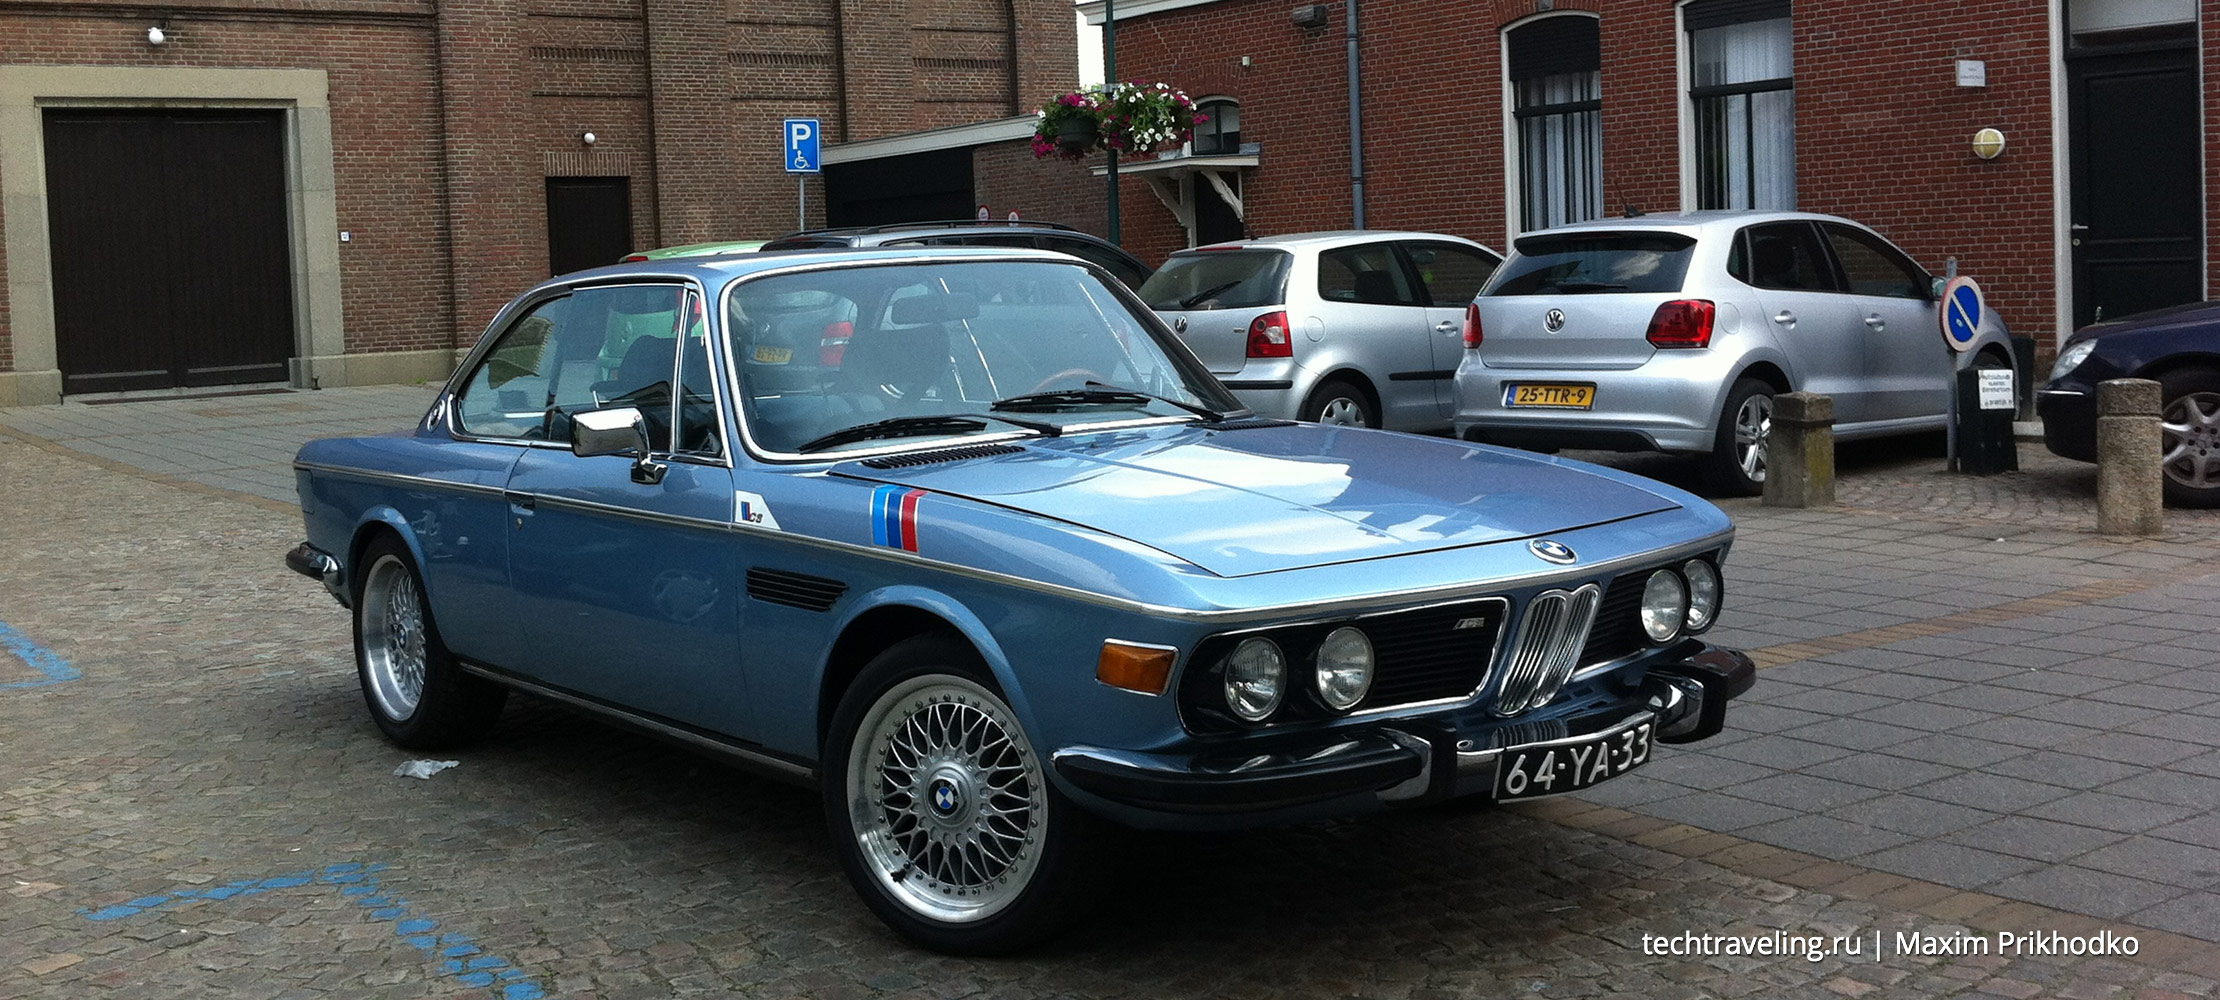 BMW 2800 (E9) Need For Speed